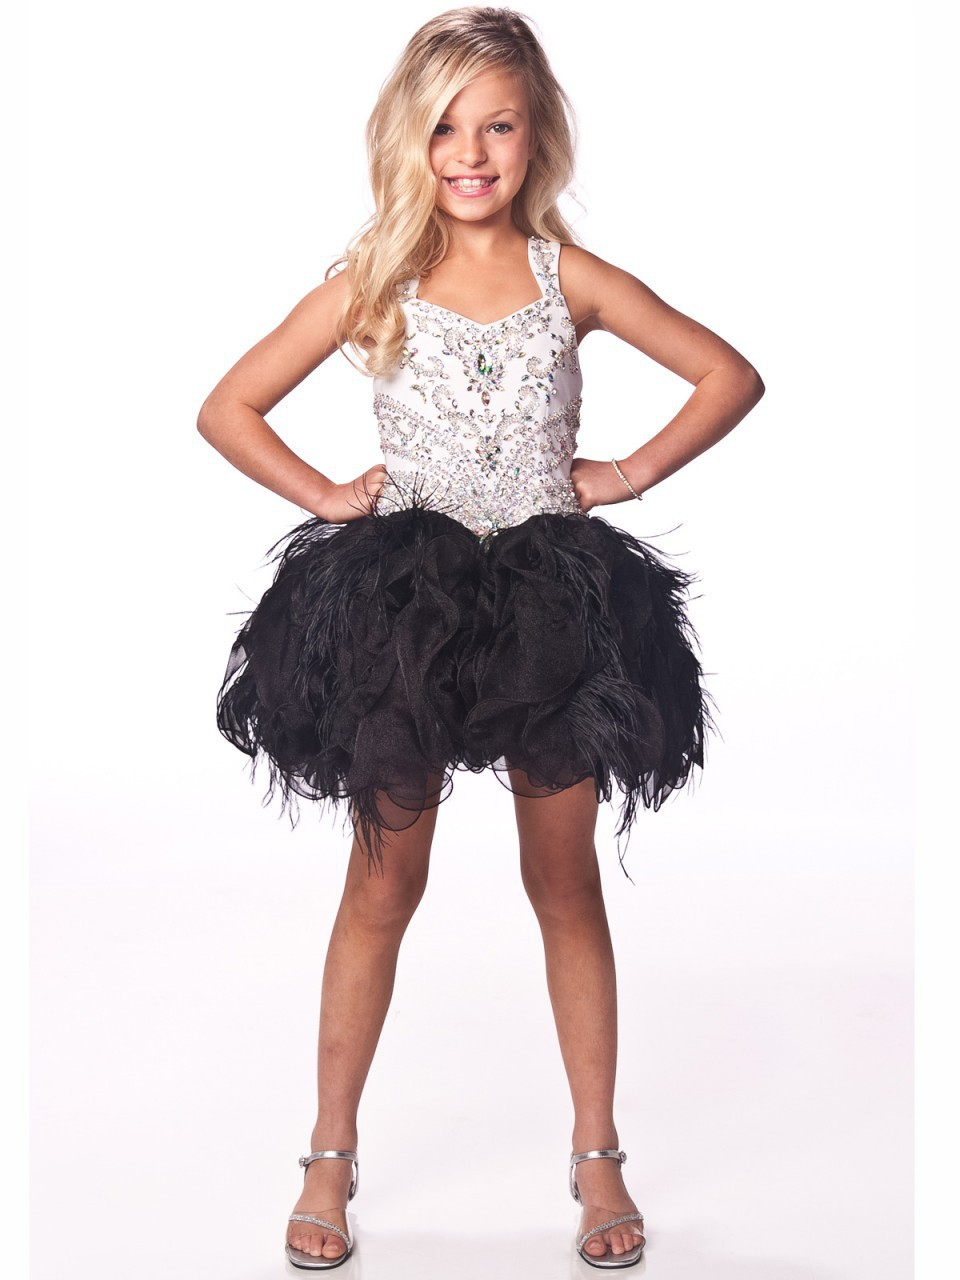 Aliexpress.com : Buy cupcake glitz girls short pageant dresses ...